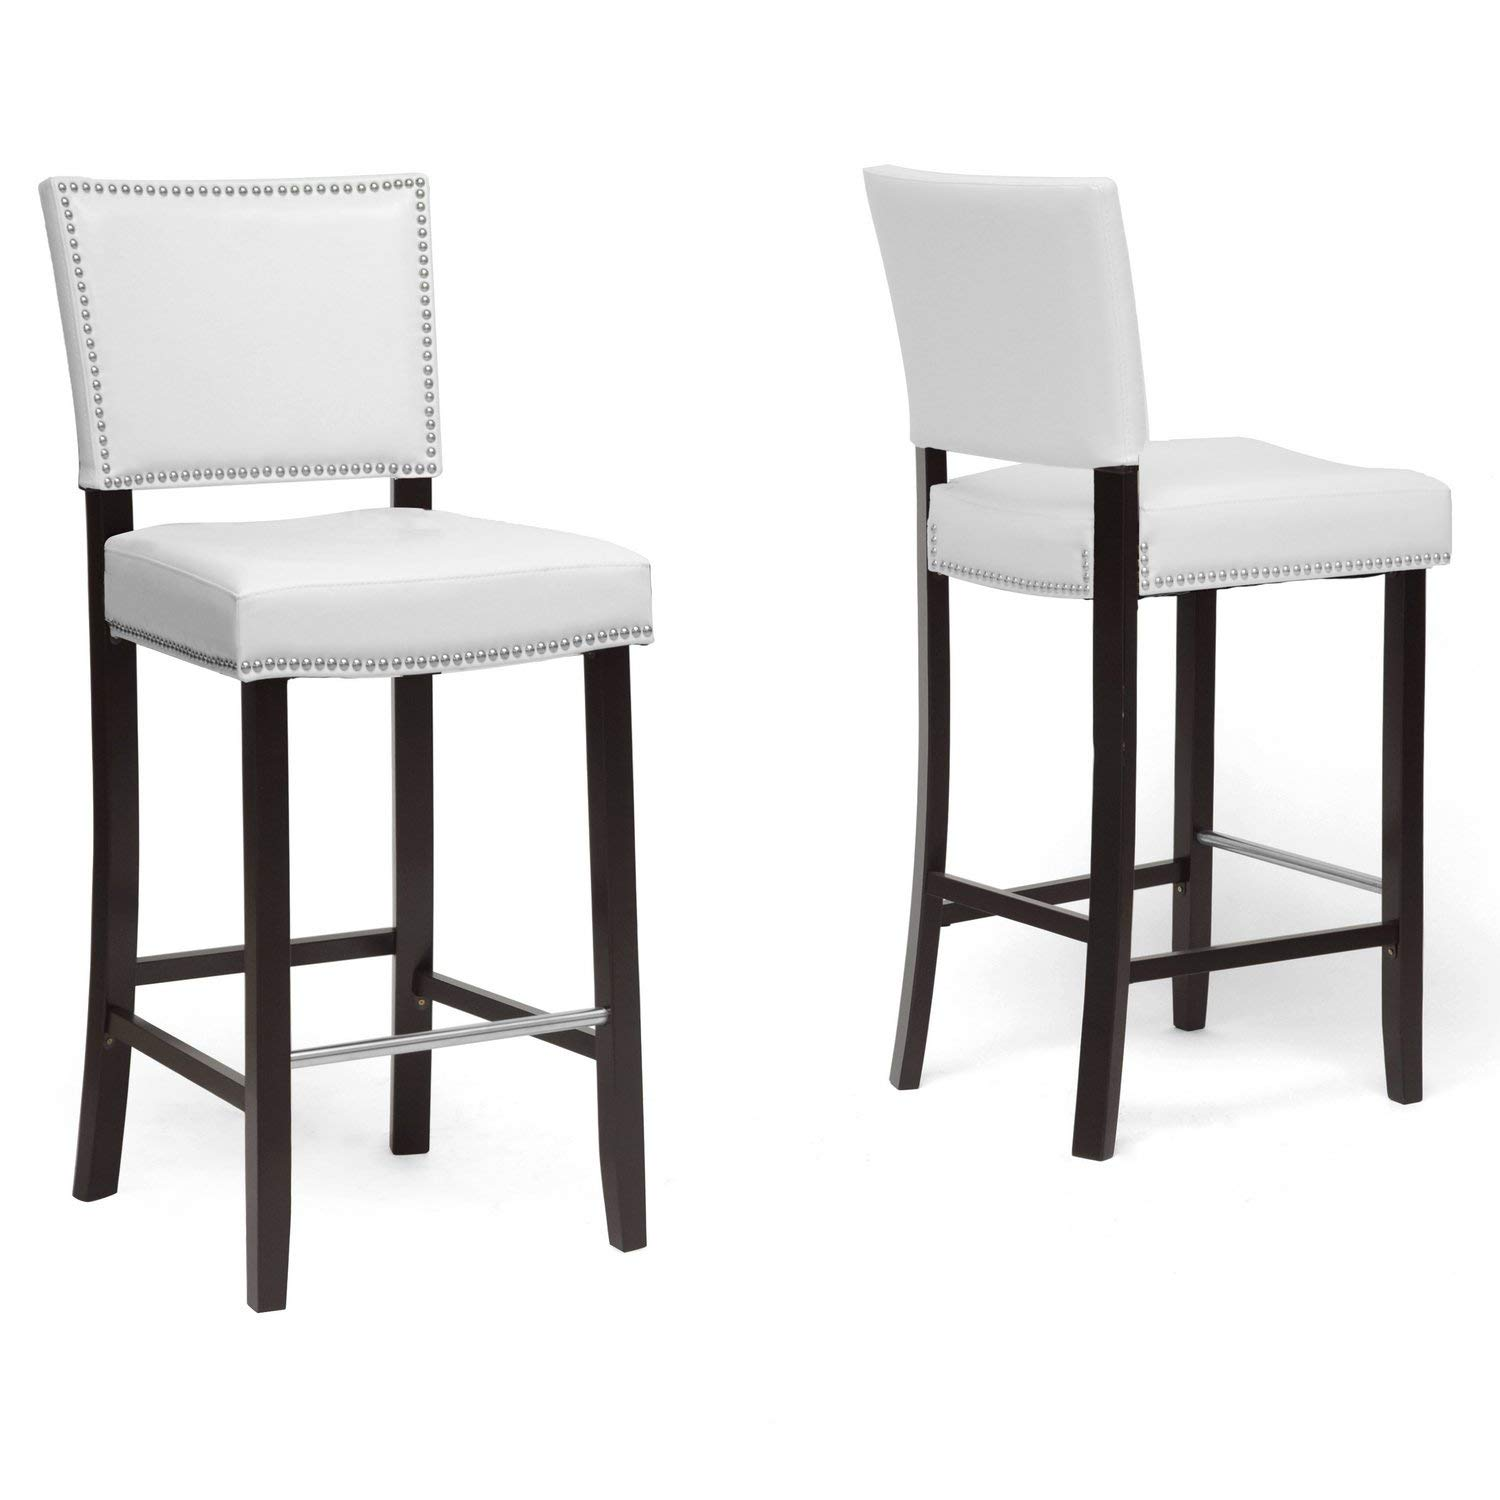 modern bar stools counter height amazon.com: baxton studio aries modern bar stool with nail head trim, ABQTTCX